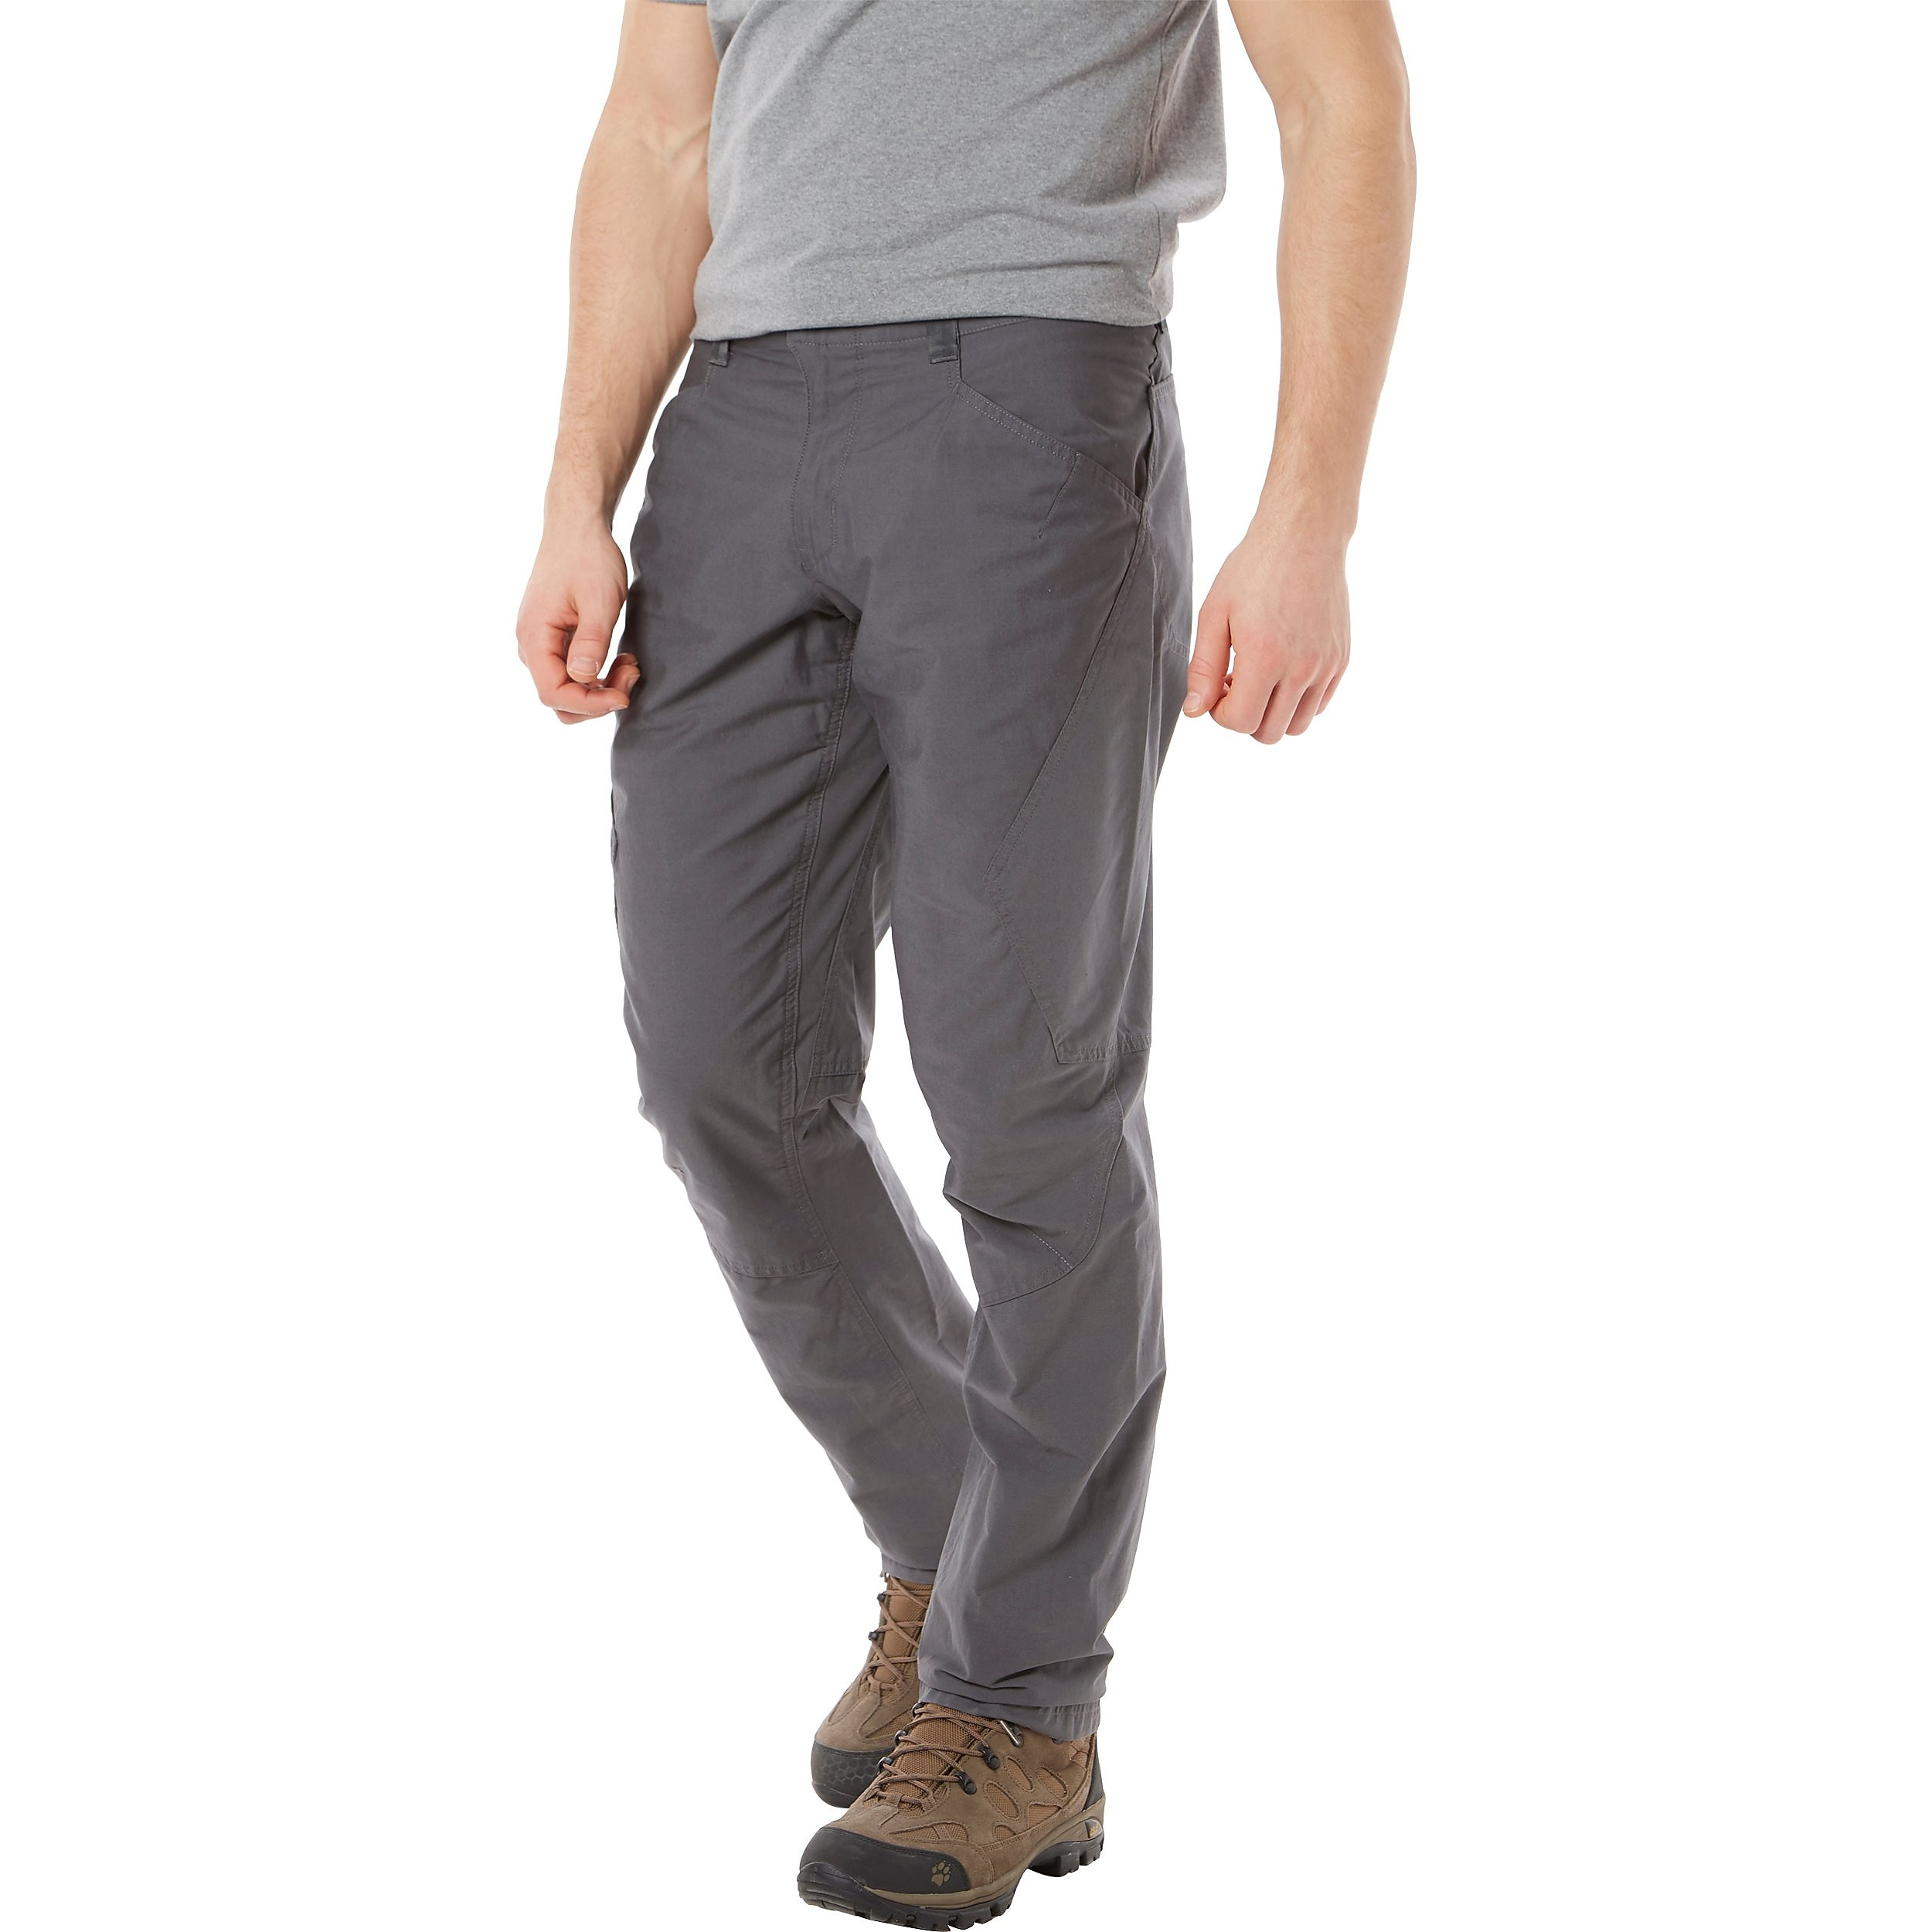 Patagonia Venga Rock Men's Pants